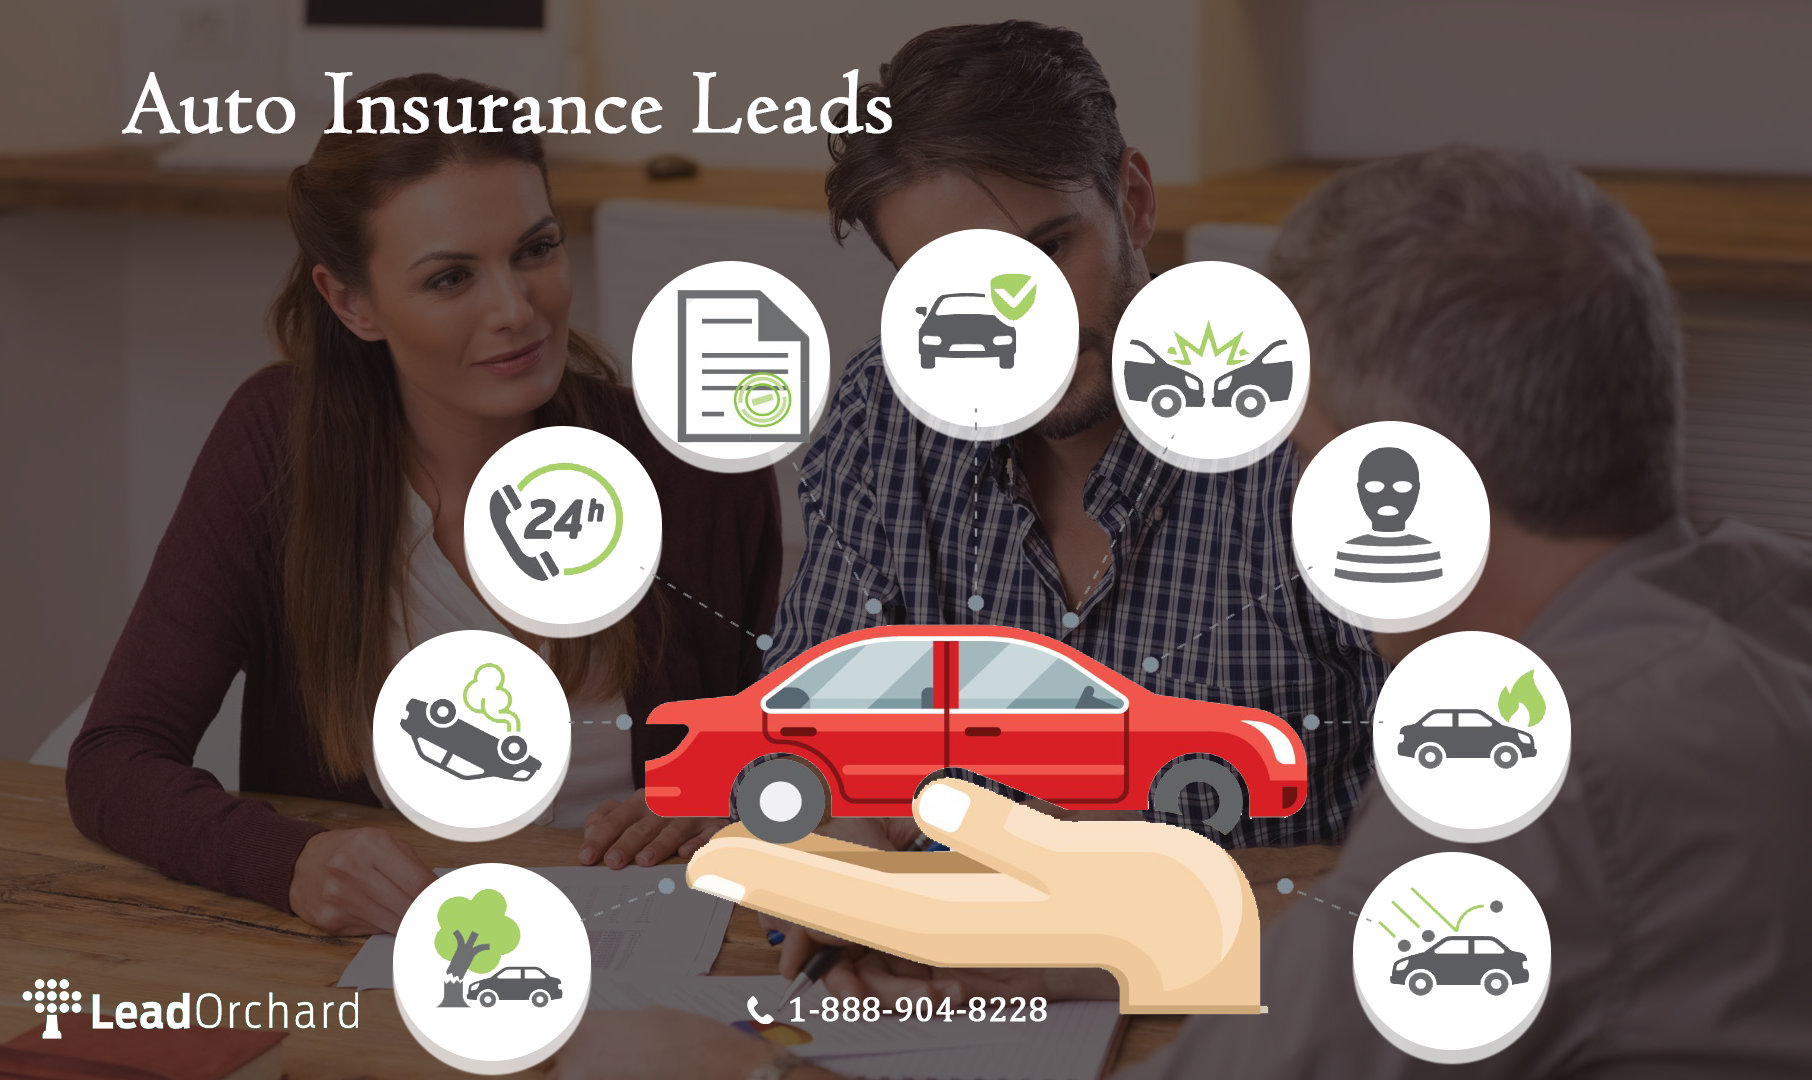 Auto Insurance Leads Home And Auto Insurance Car Insurance